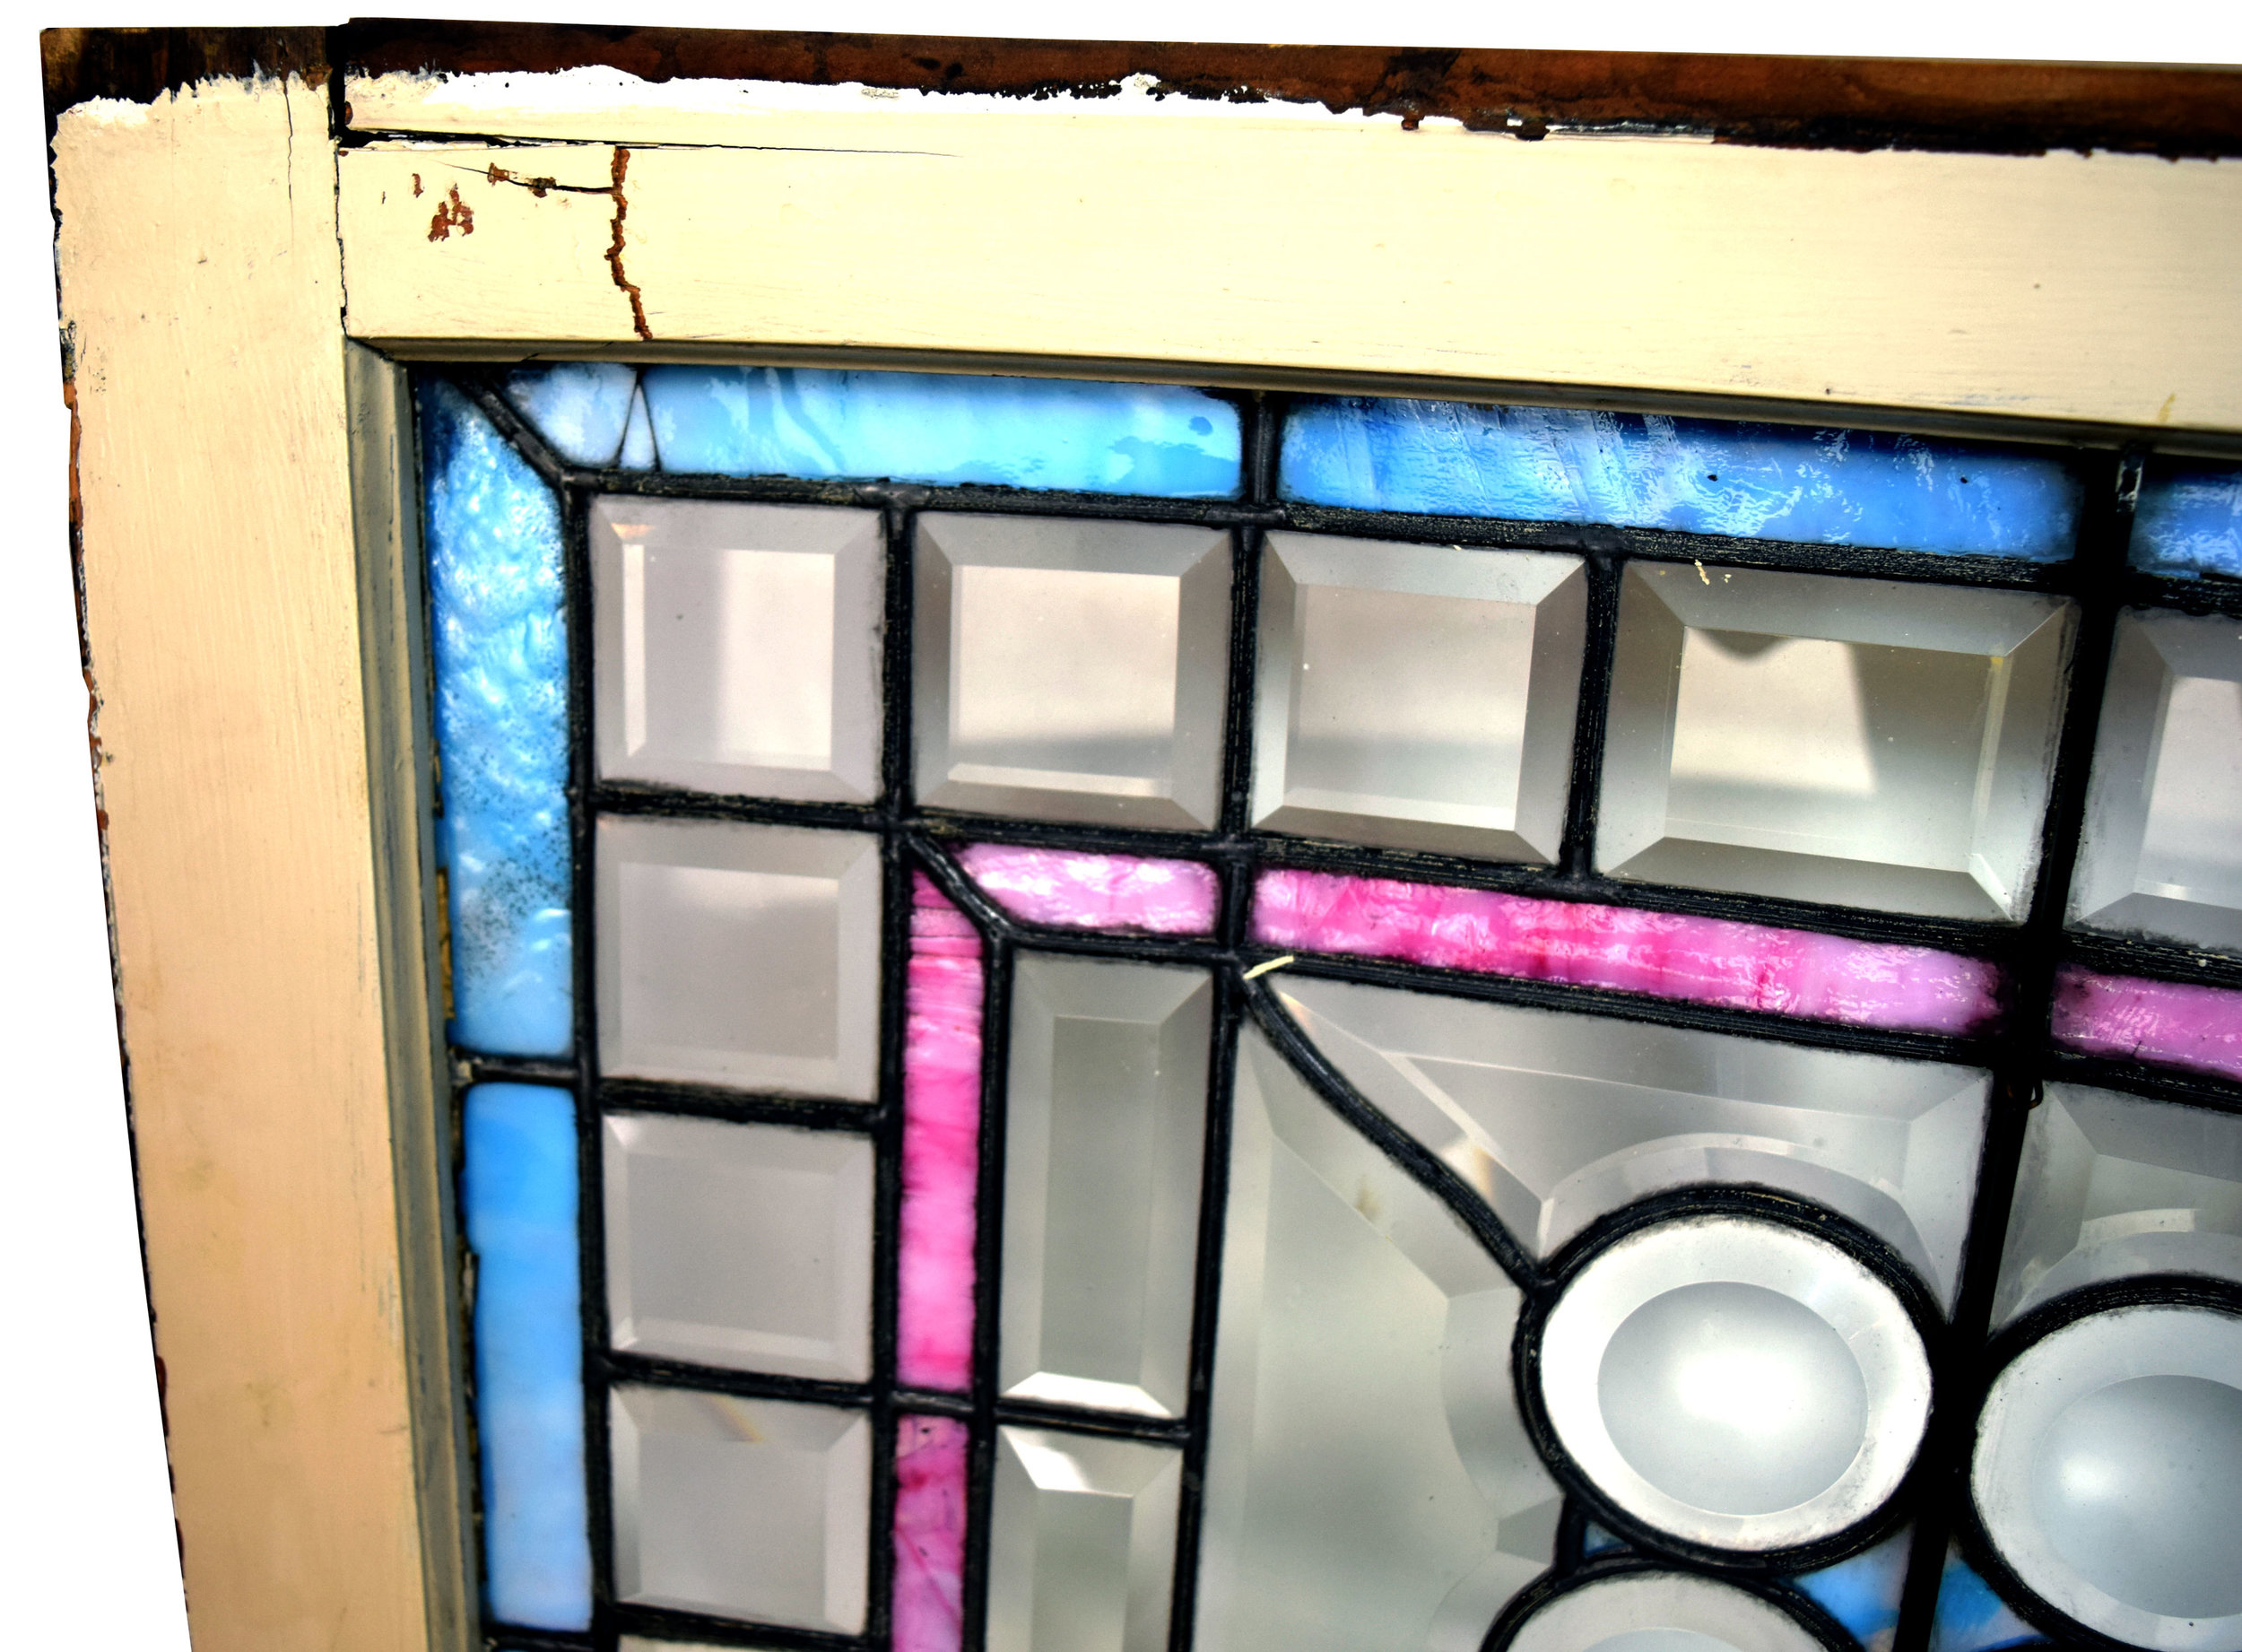 47209-curved-victorian-window-with-clam-rondells-corner.jpg